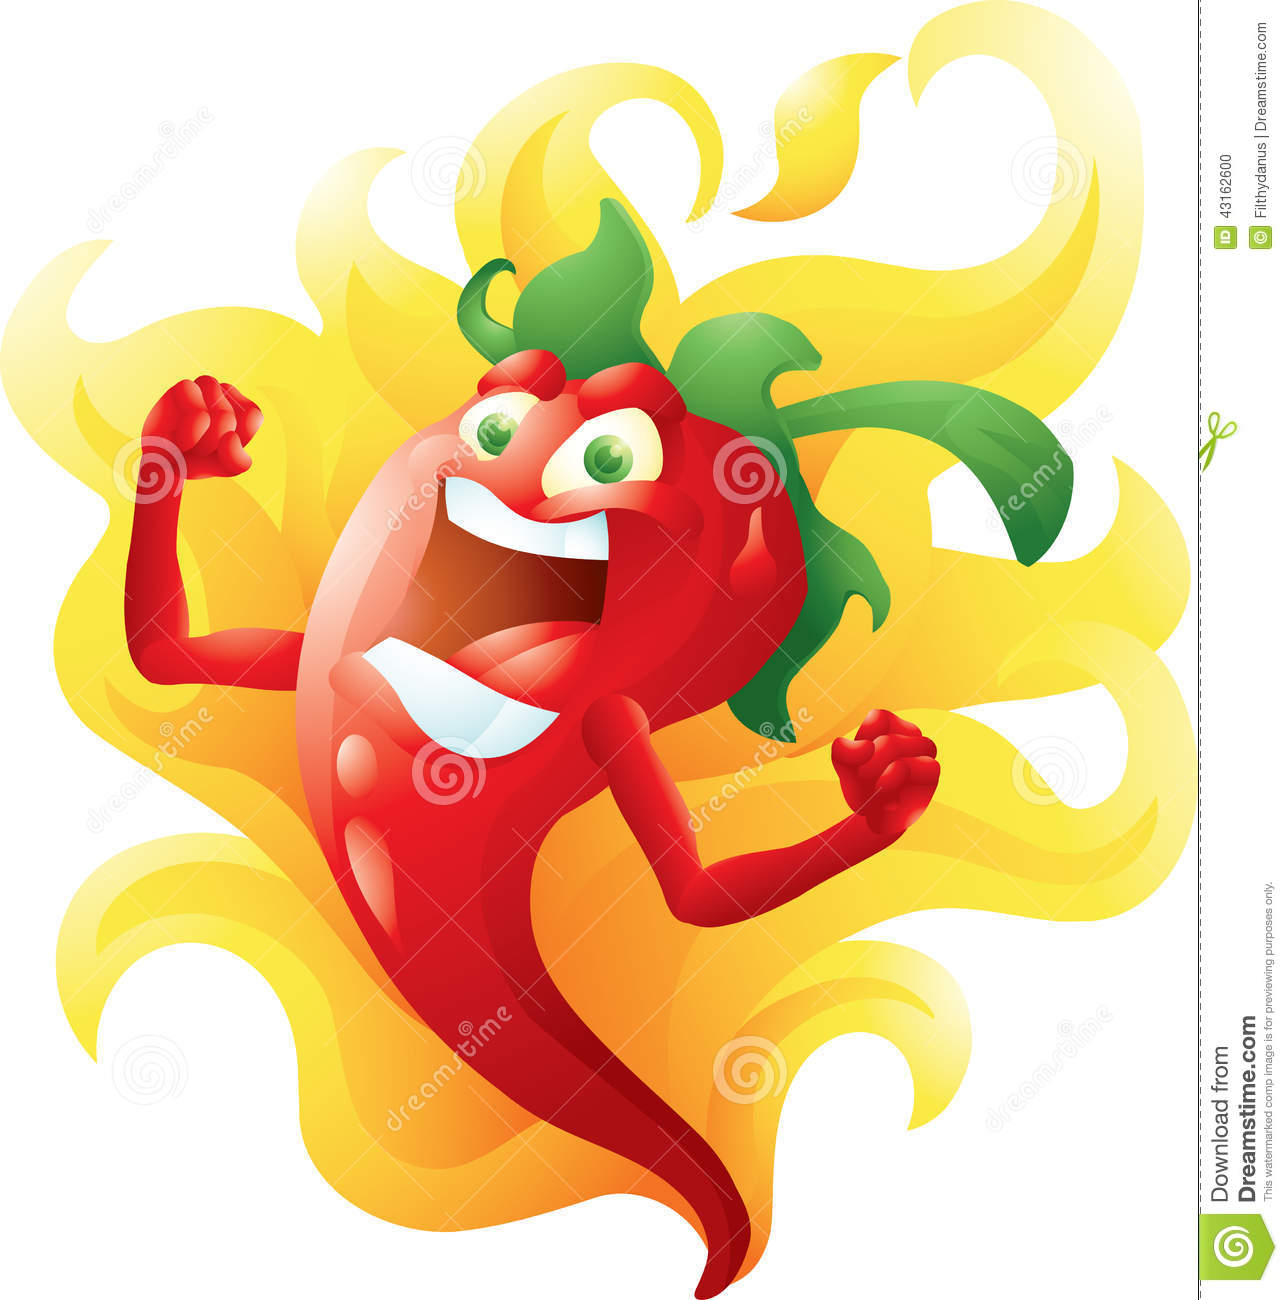 Populaire Red Hot Pepper On Fire Cartoon Stock Vector - Image: 43162600 XG13